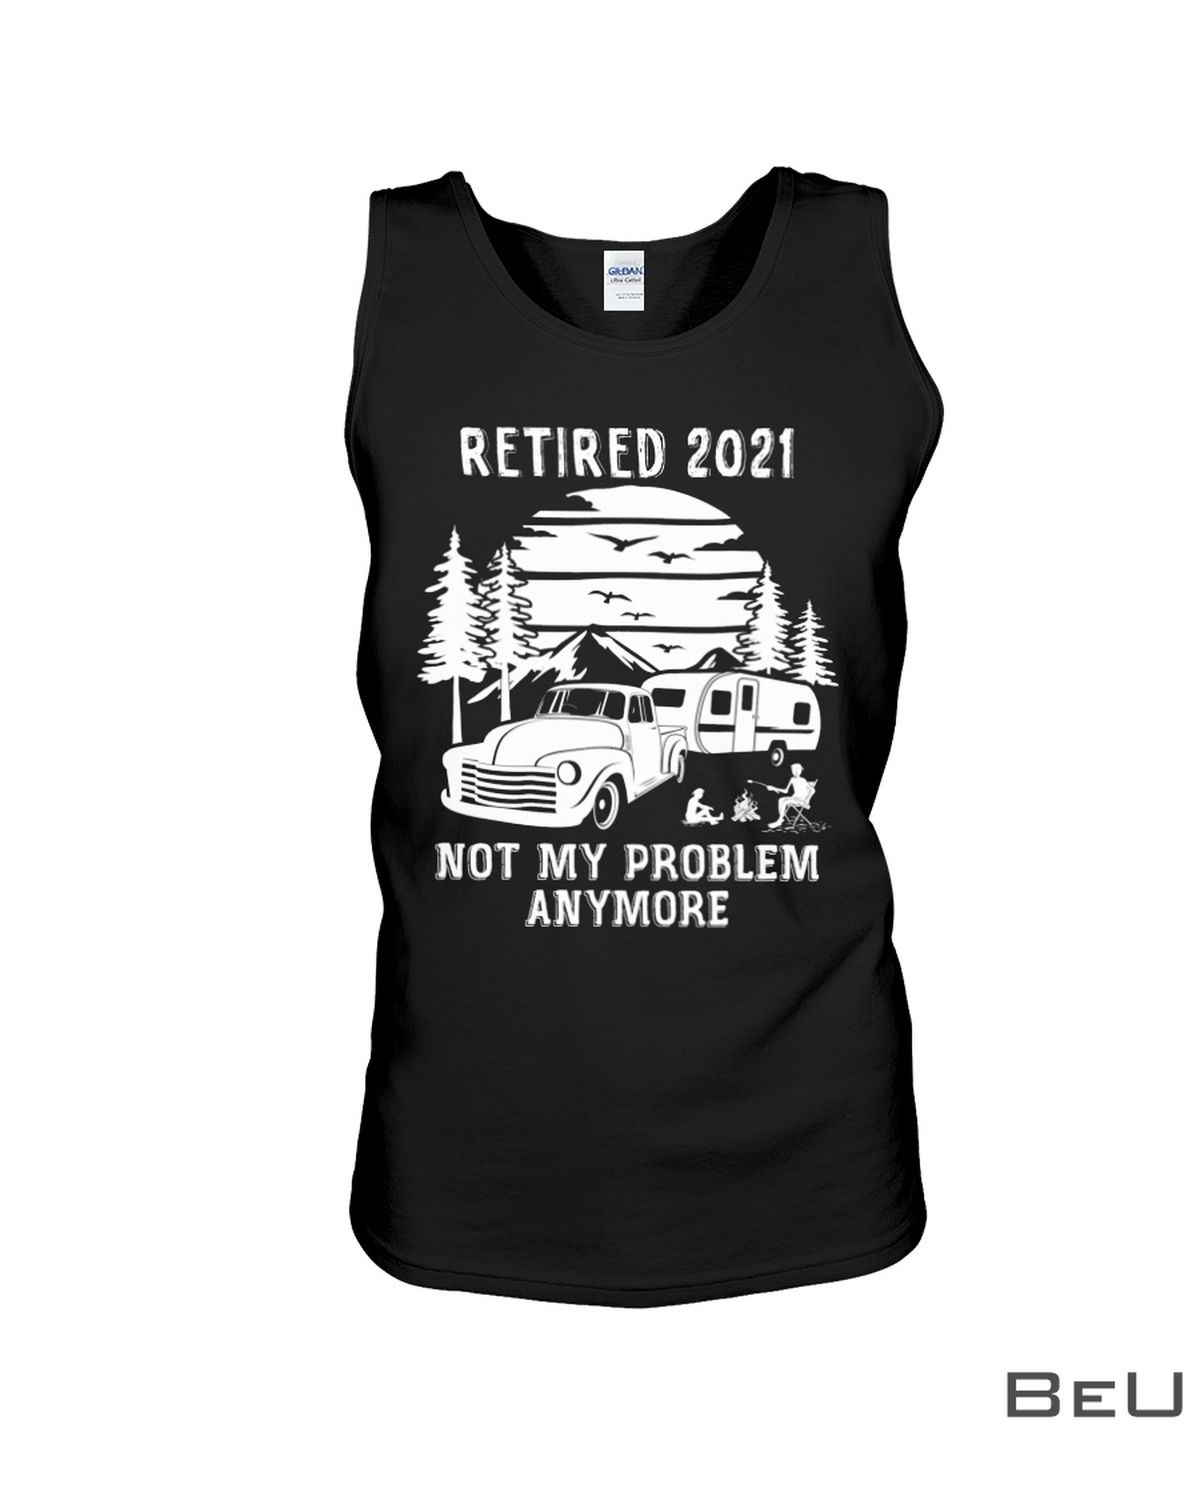 Retired 2021 Not My Problem Anymore Camping Shirtc